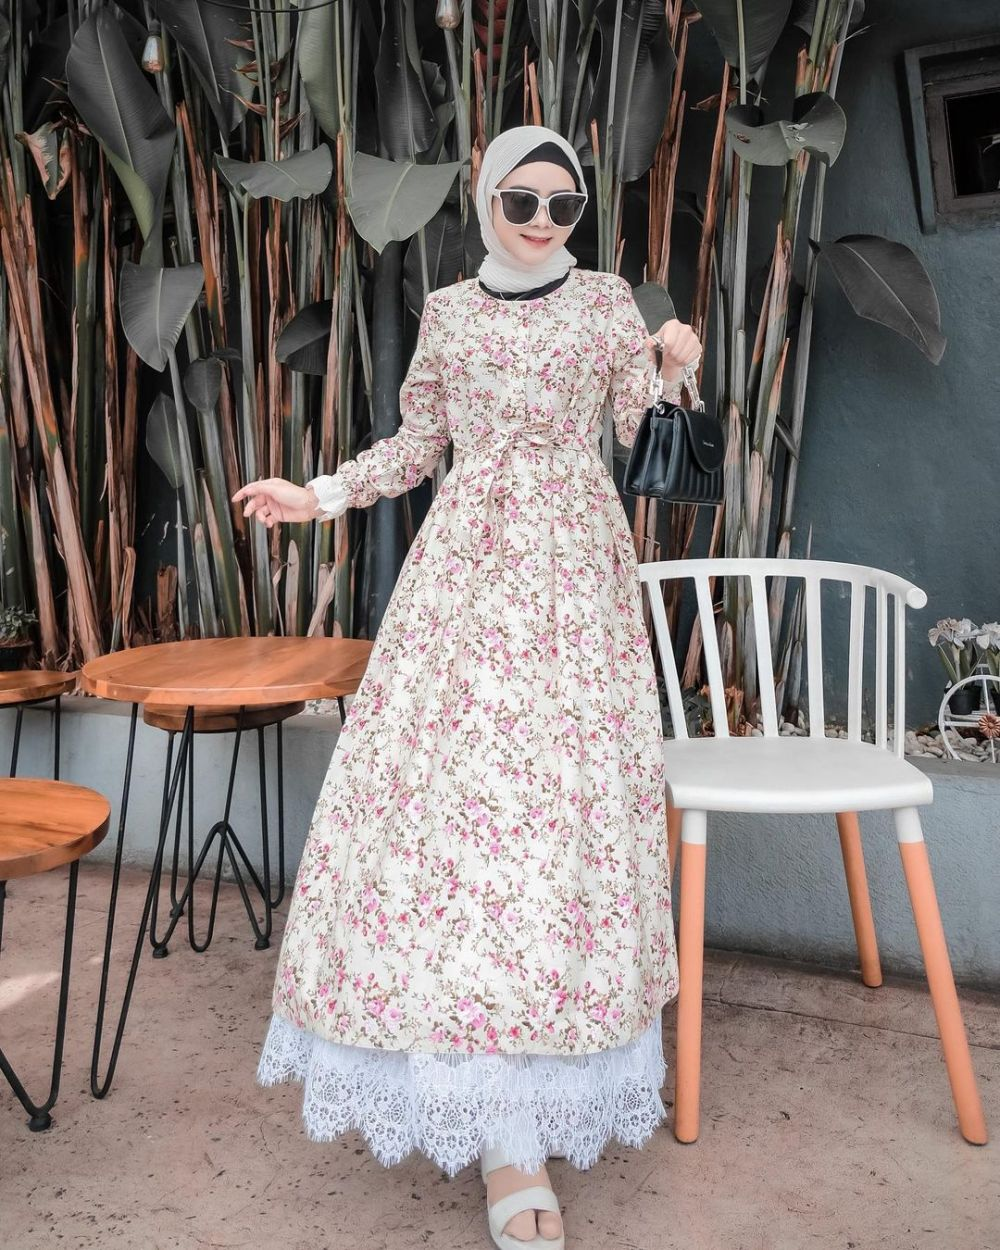 10 Ide Mix and Match Floral Outfit ala Nafisah Fauziyyah, Fresh!